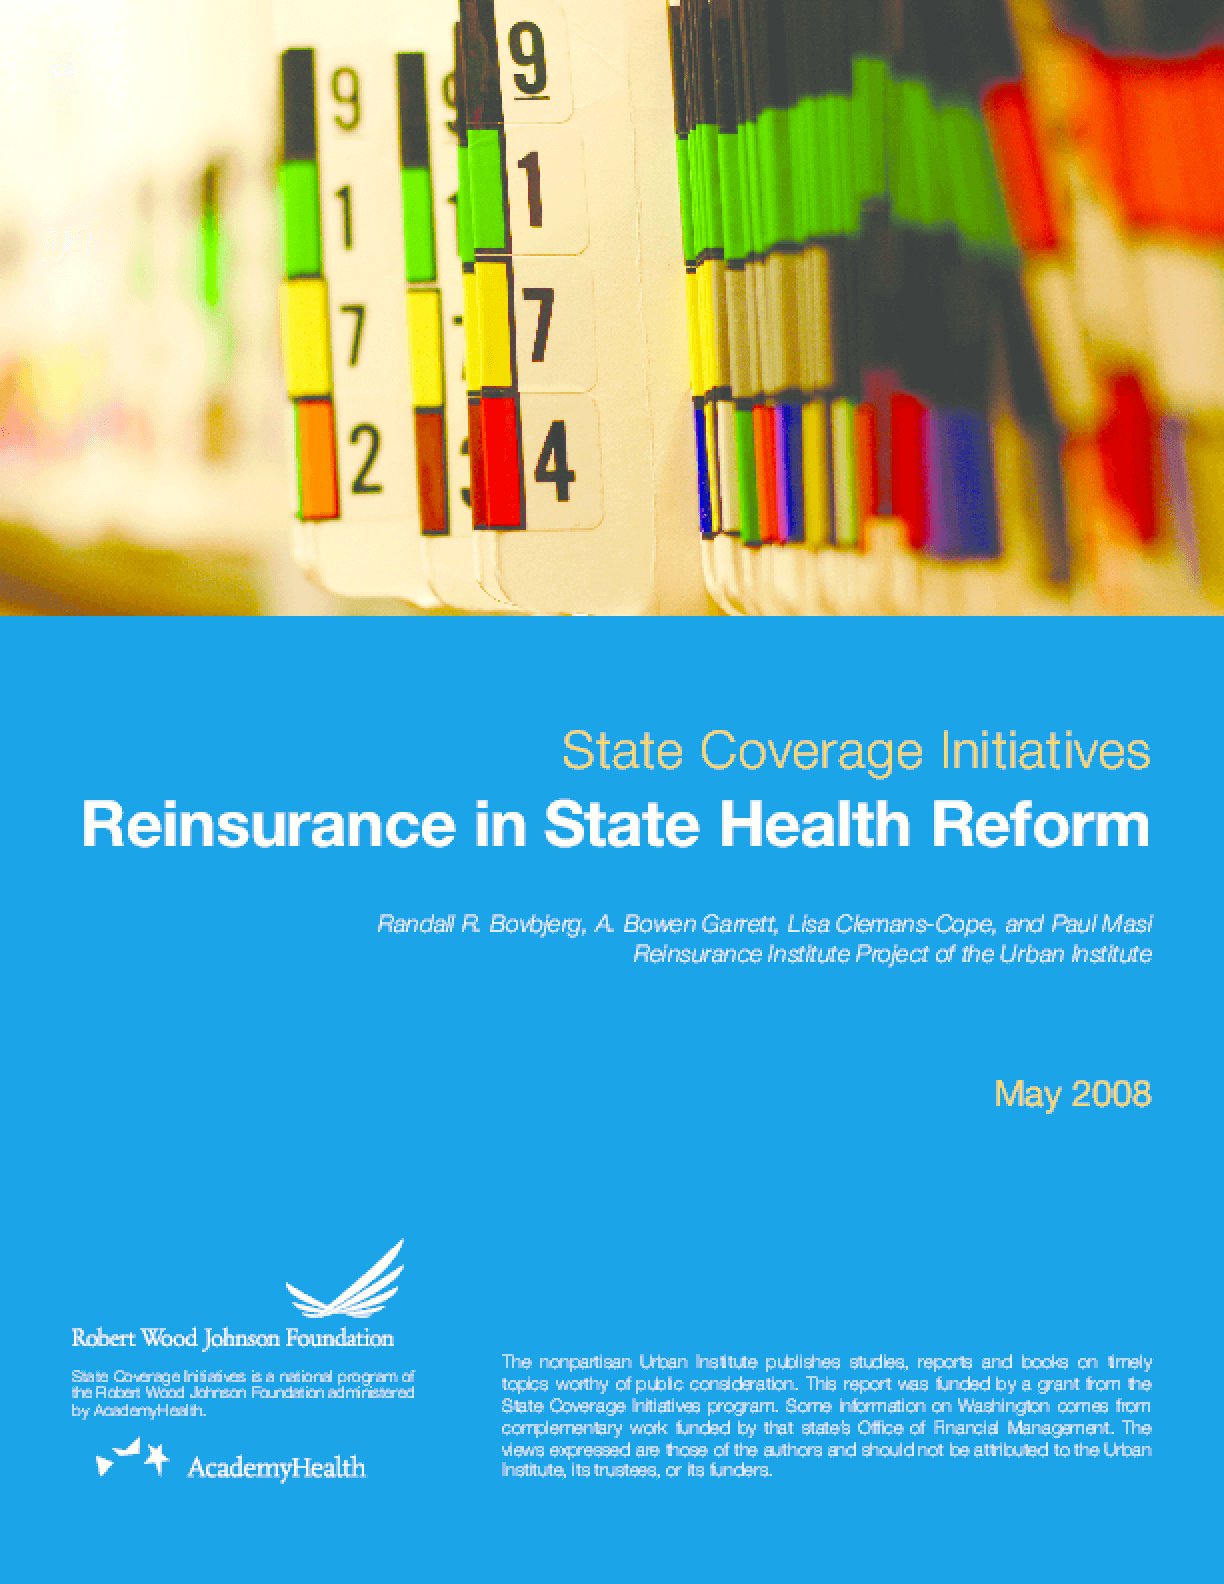 Reinsurance in State Health Reform